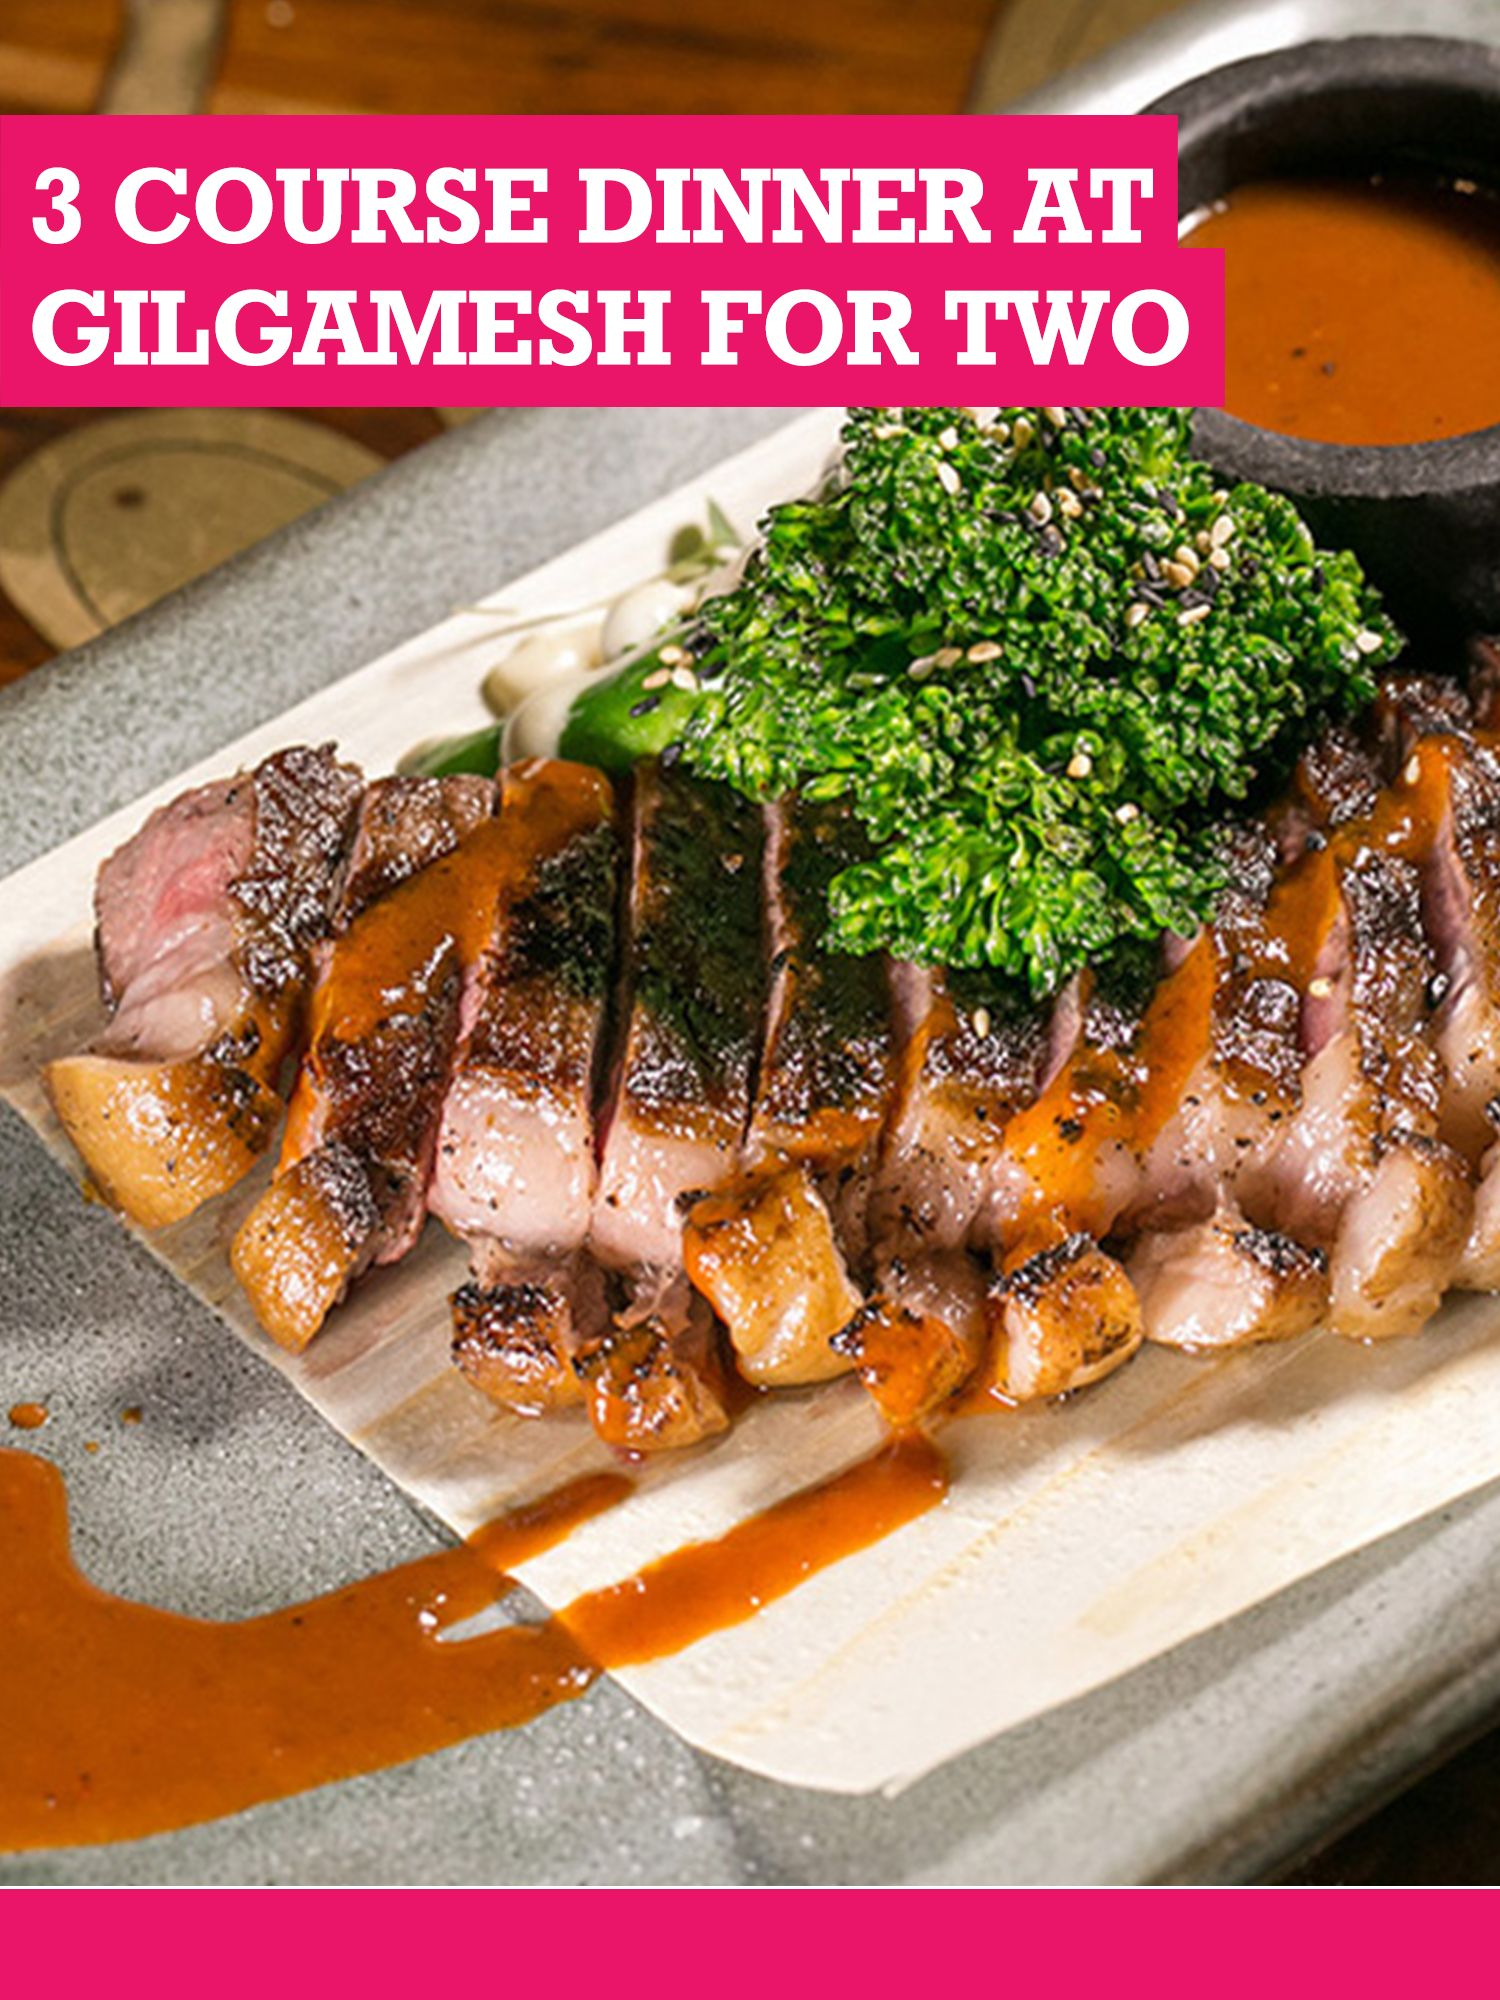 Buyagift Buyagift Three Course Dinner At Gilgamesh For Two